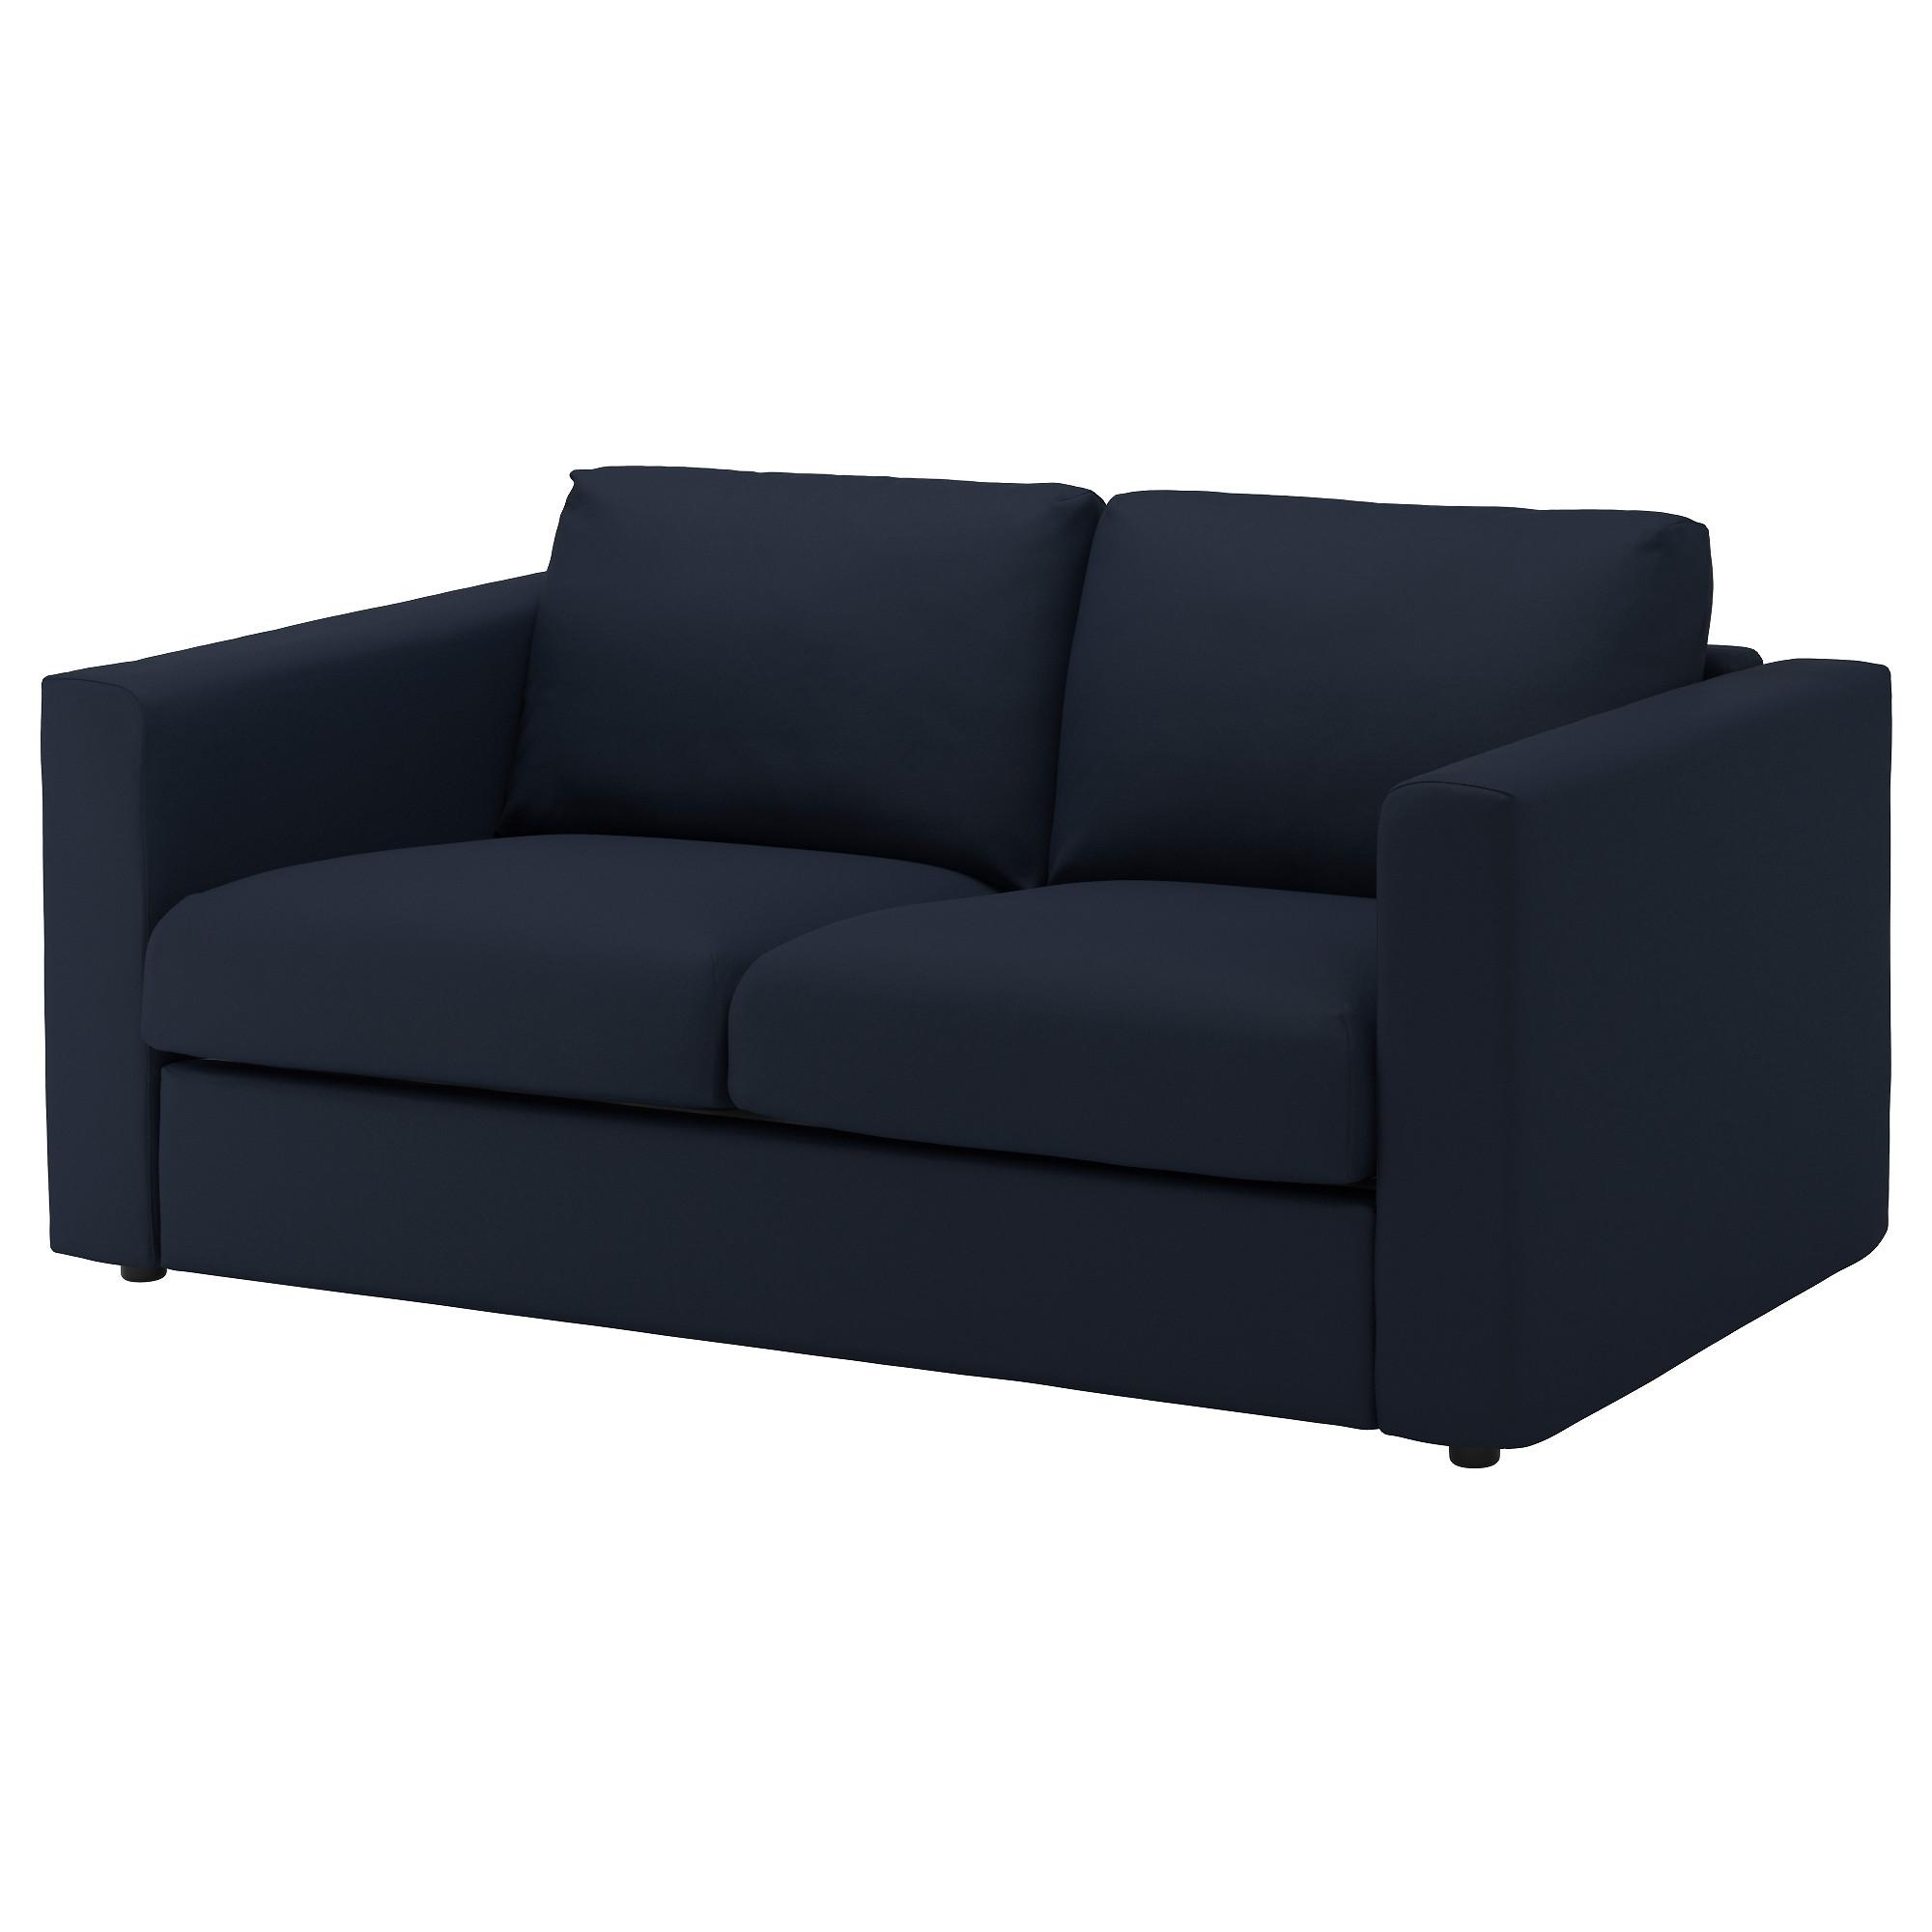 Vimle 2 Seat Sofa Gräsbo Black Blue – Ikea Inside Ikea Two Seater Sofas (Photo 4 of 20)